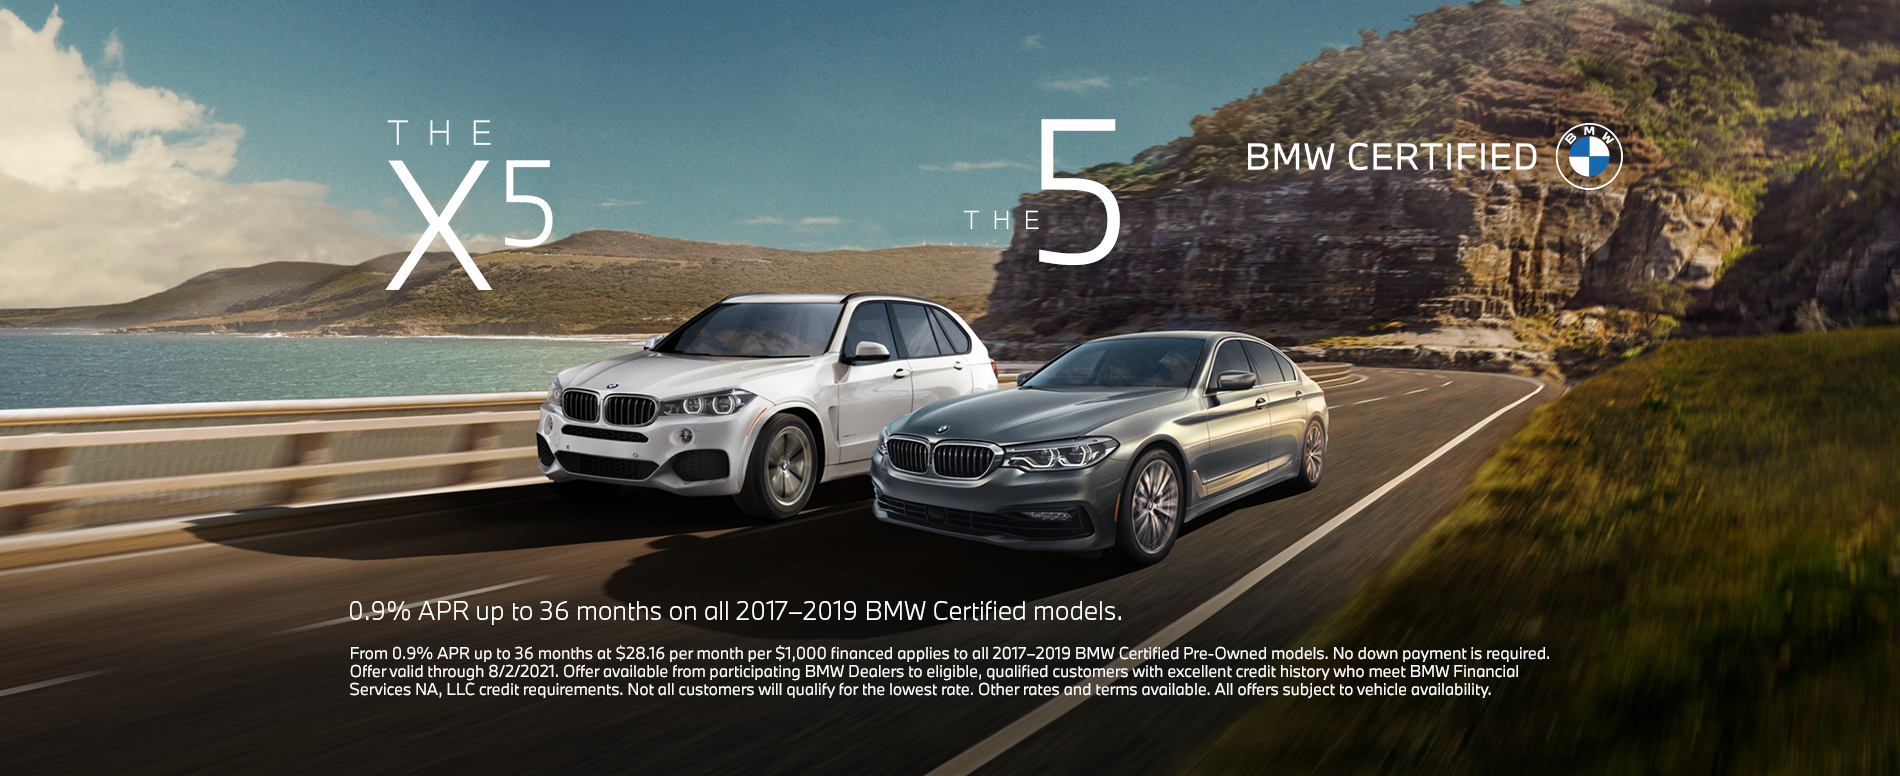 0.9% APR up to 36 months on all 2017 - 2019 BMW Certified Models  From 0.9% APR up to 36 months at $28.16 per month per $1,000 financed applies to all 2017-2019 BMW Certified Pre-Owned models. No down payment is required. Offer valid through 8/2/2021. Offer available from participating BMW Dealers to eligible, qualified customers with excellent credit history who meet BMW Financial Services NA, LLC credit requirements. Not all customers will qualify for the lowest rate. Other rates and terms available. All offers subject to vehicle availability.